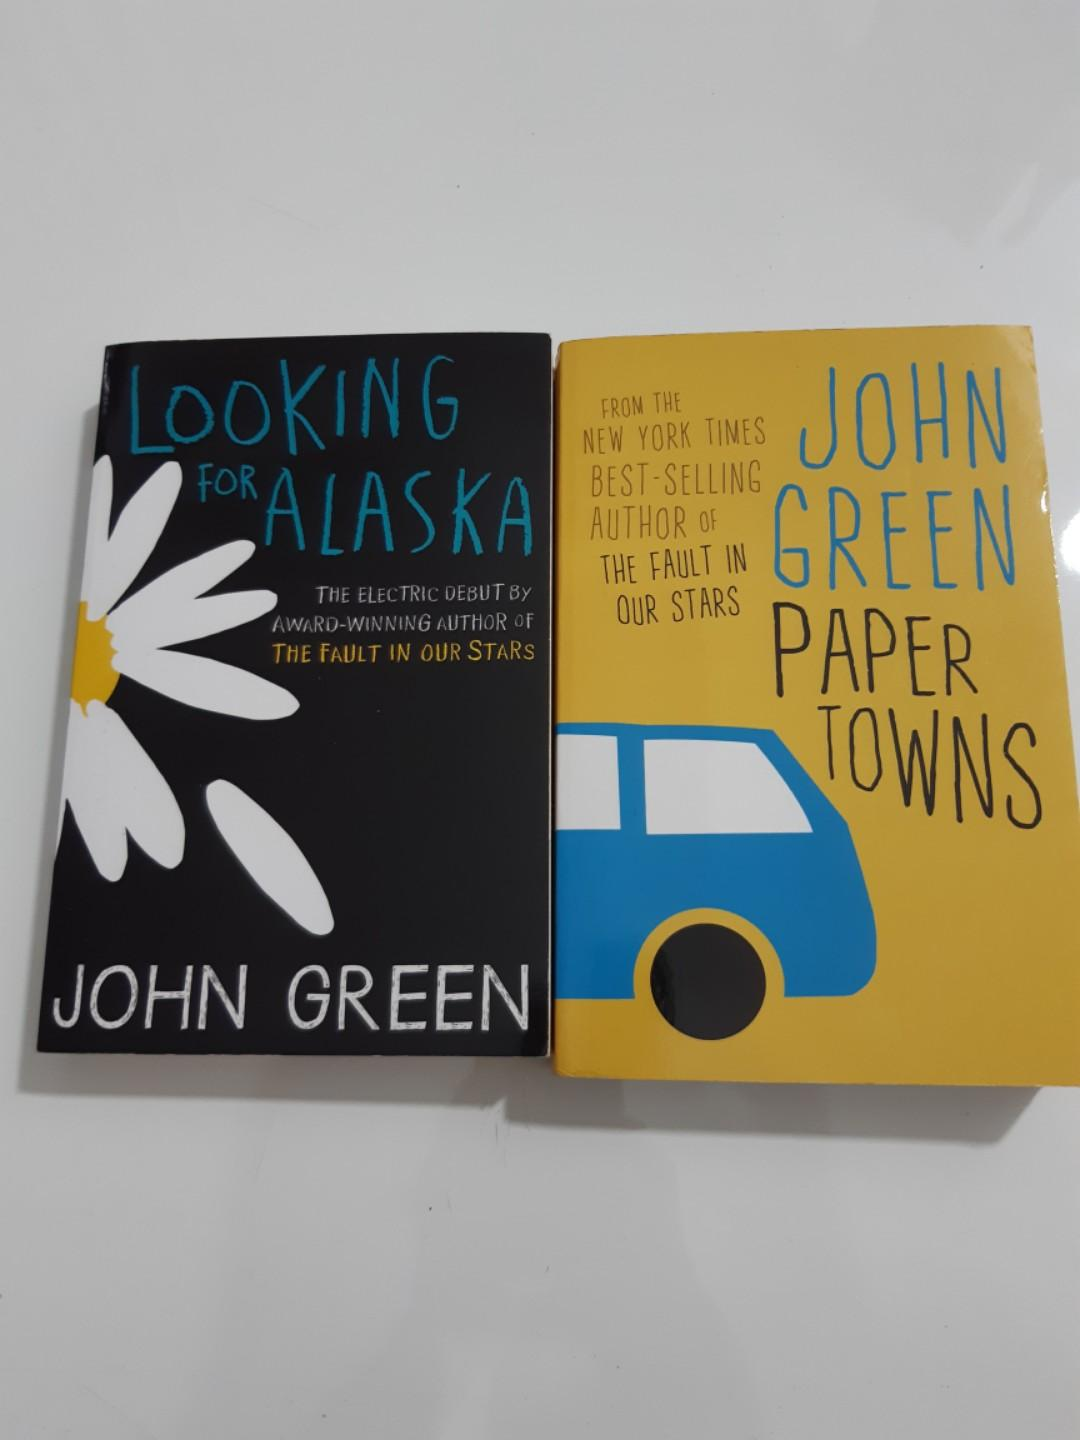 John Green books (paper towns and looking for Alaska)